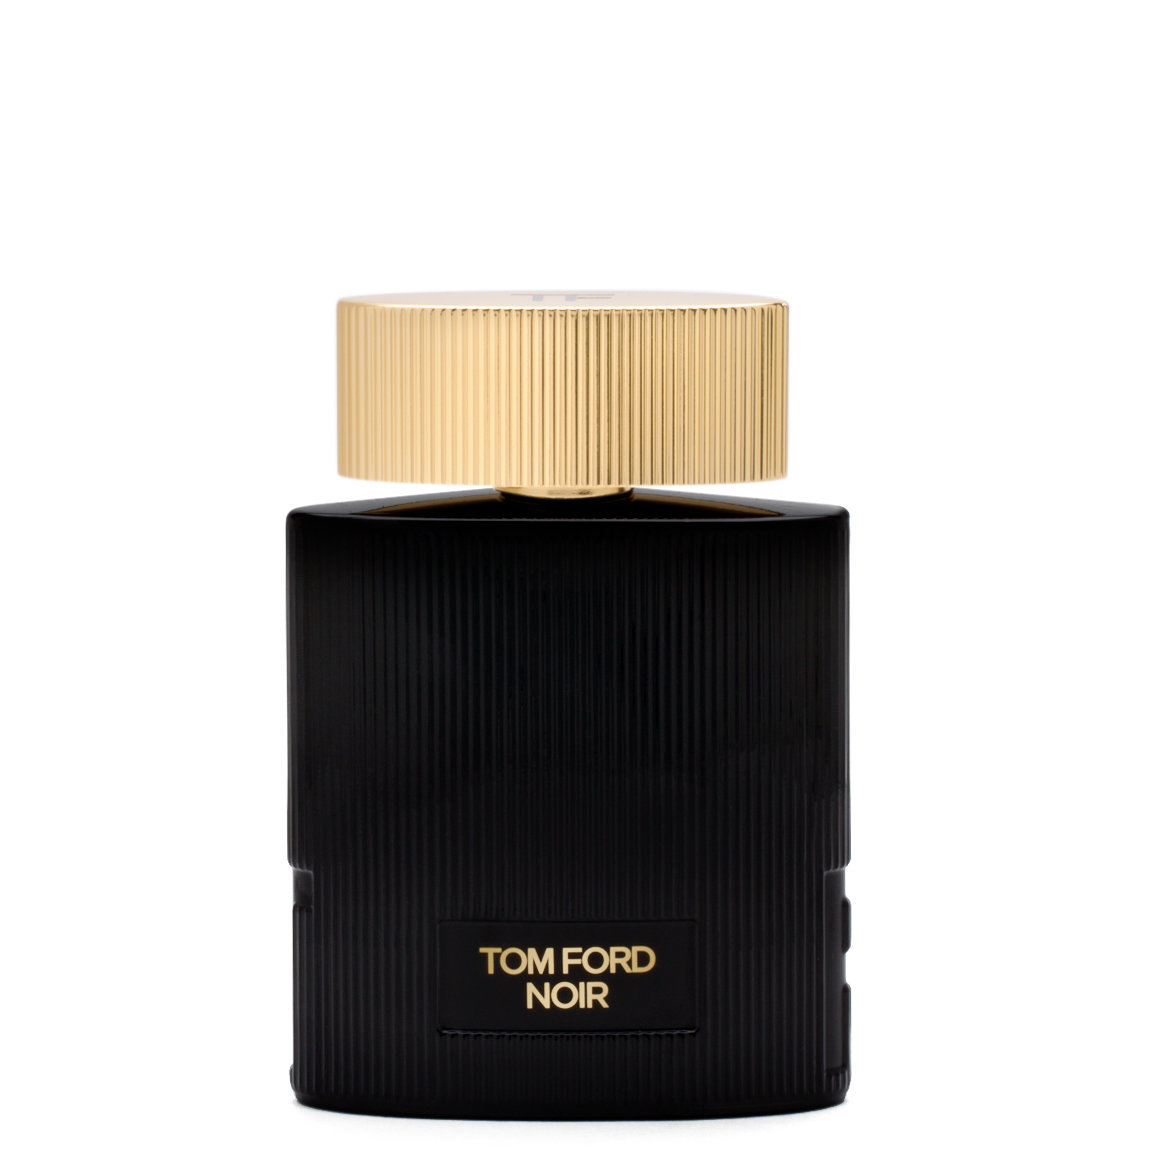 TOM FORD Tom Ford Noir Pour Femme 100 ml product swatch.